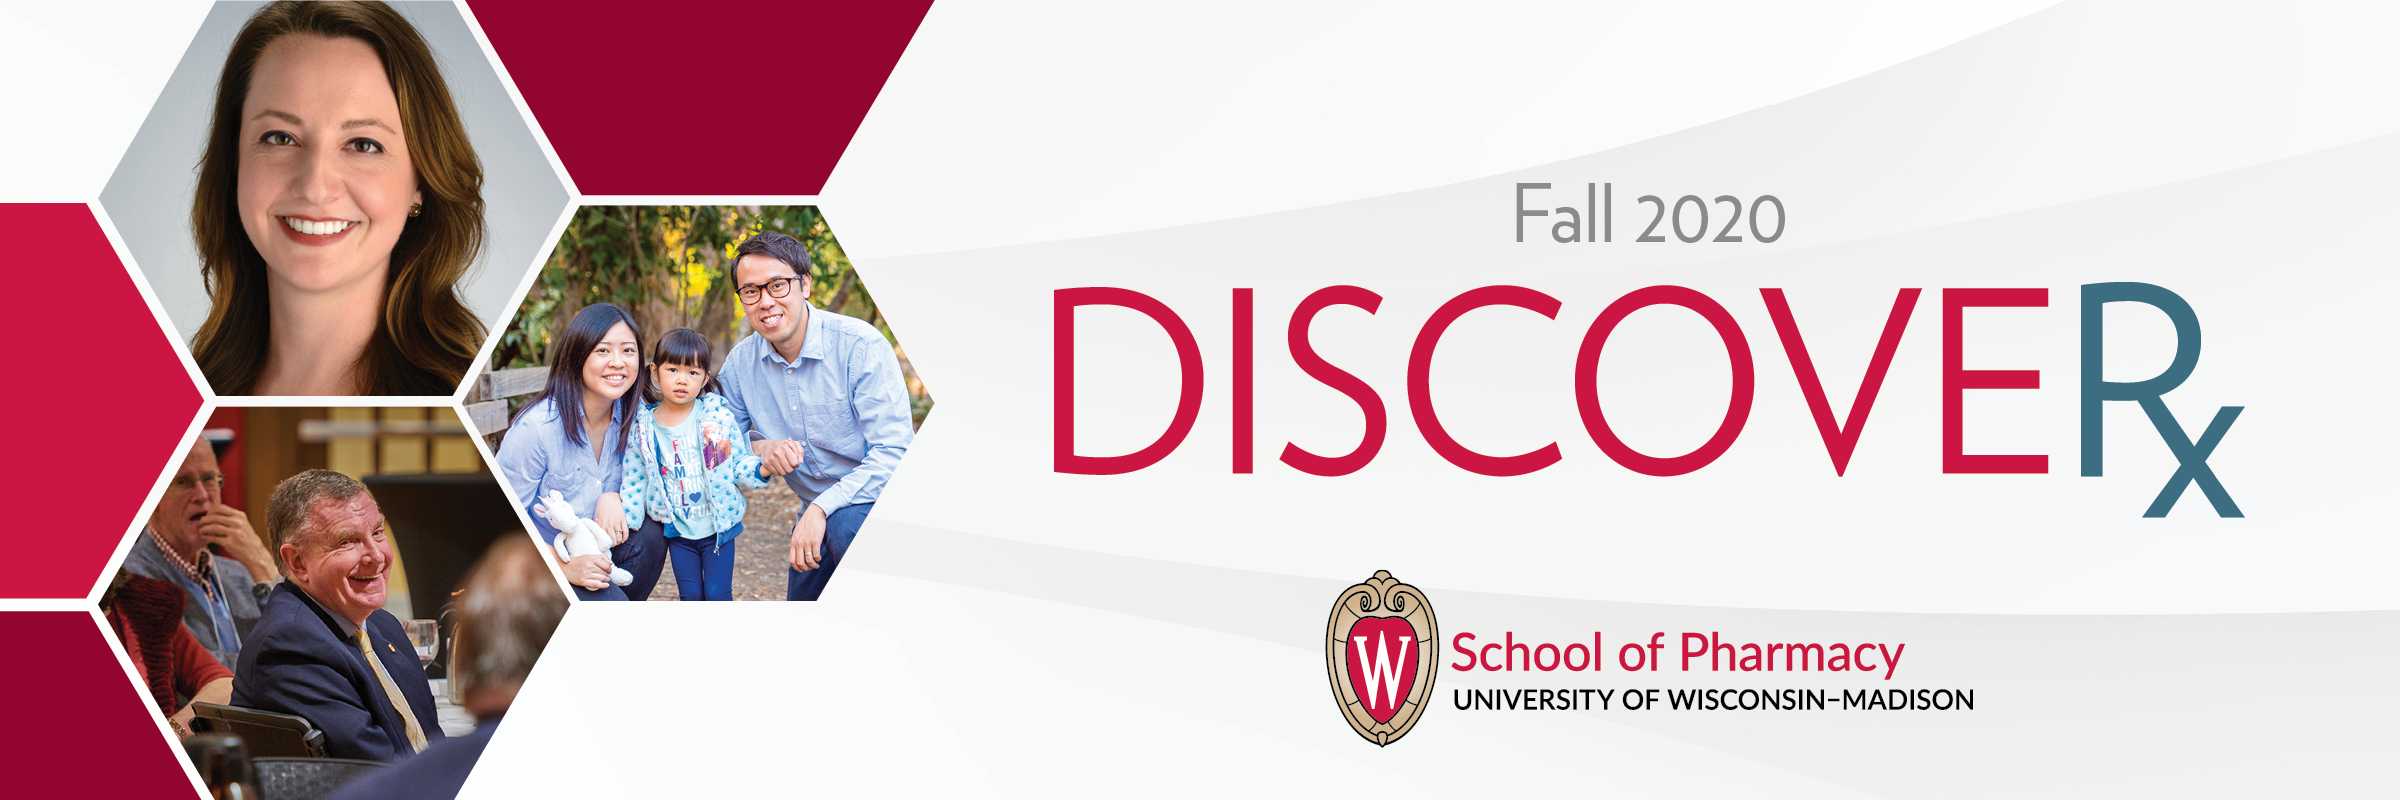 Masthead for the Fall 2020 issue of DiscoveRx